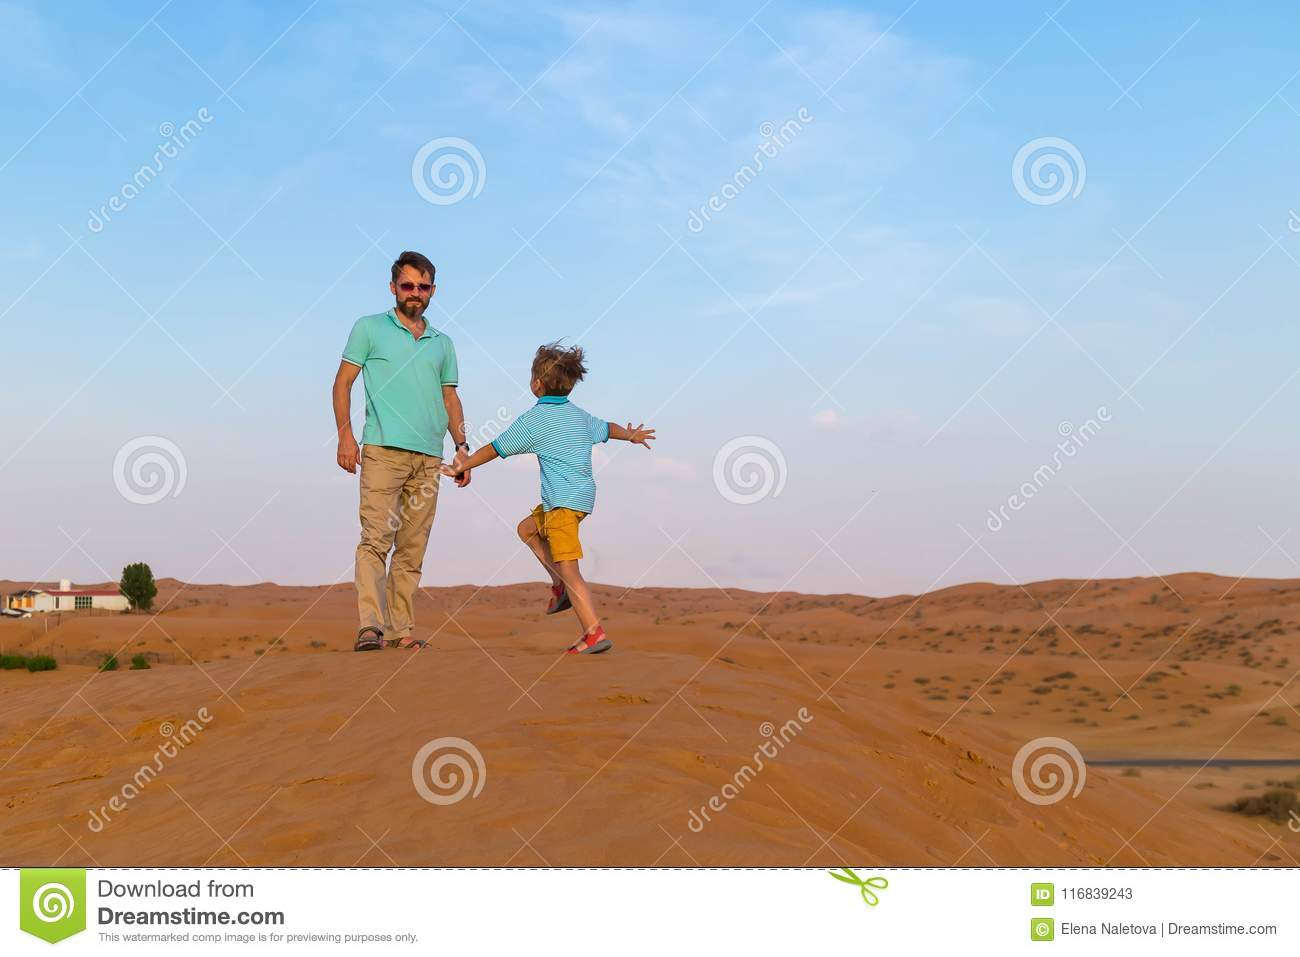 little son is runs on a meeting to the father on dunes in the hot desert